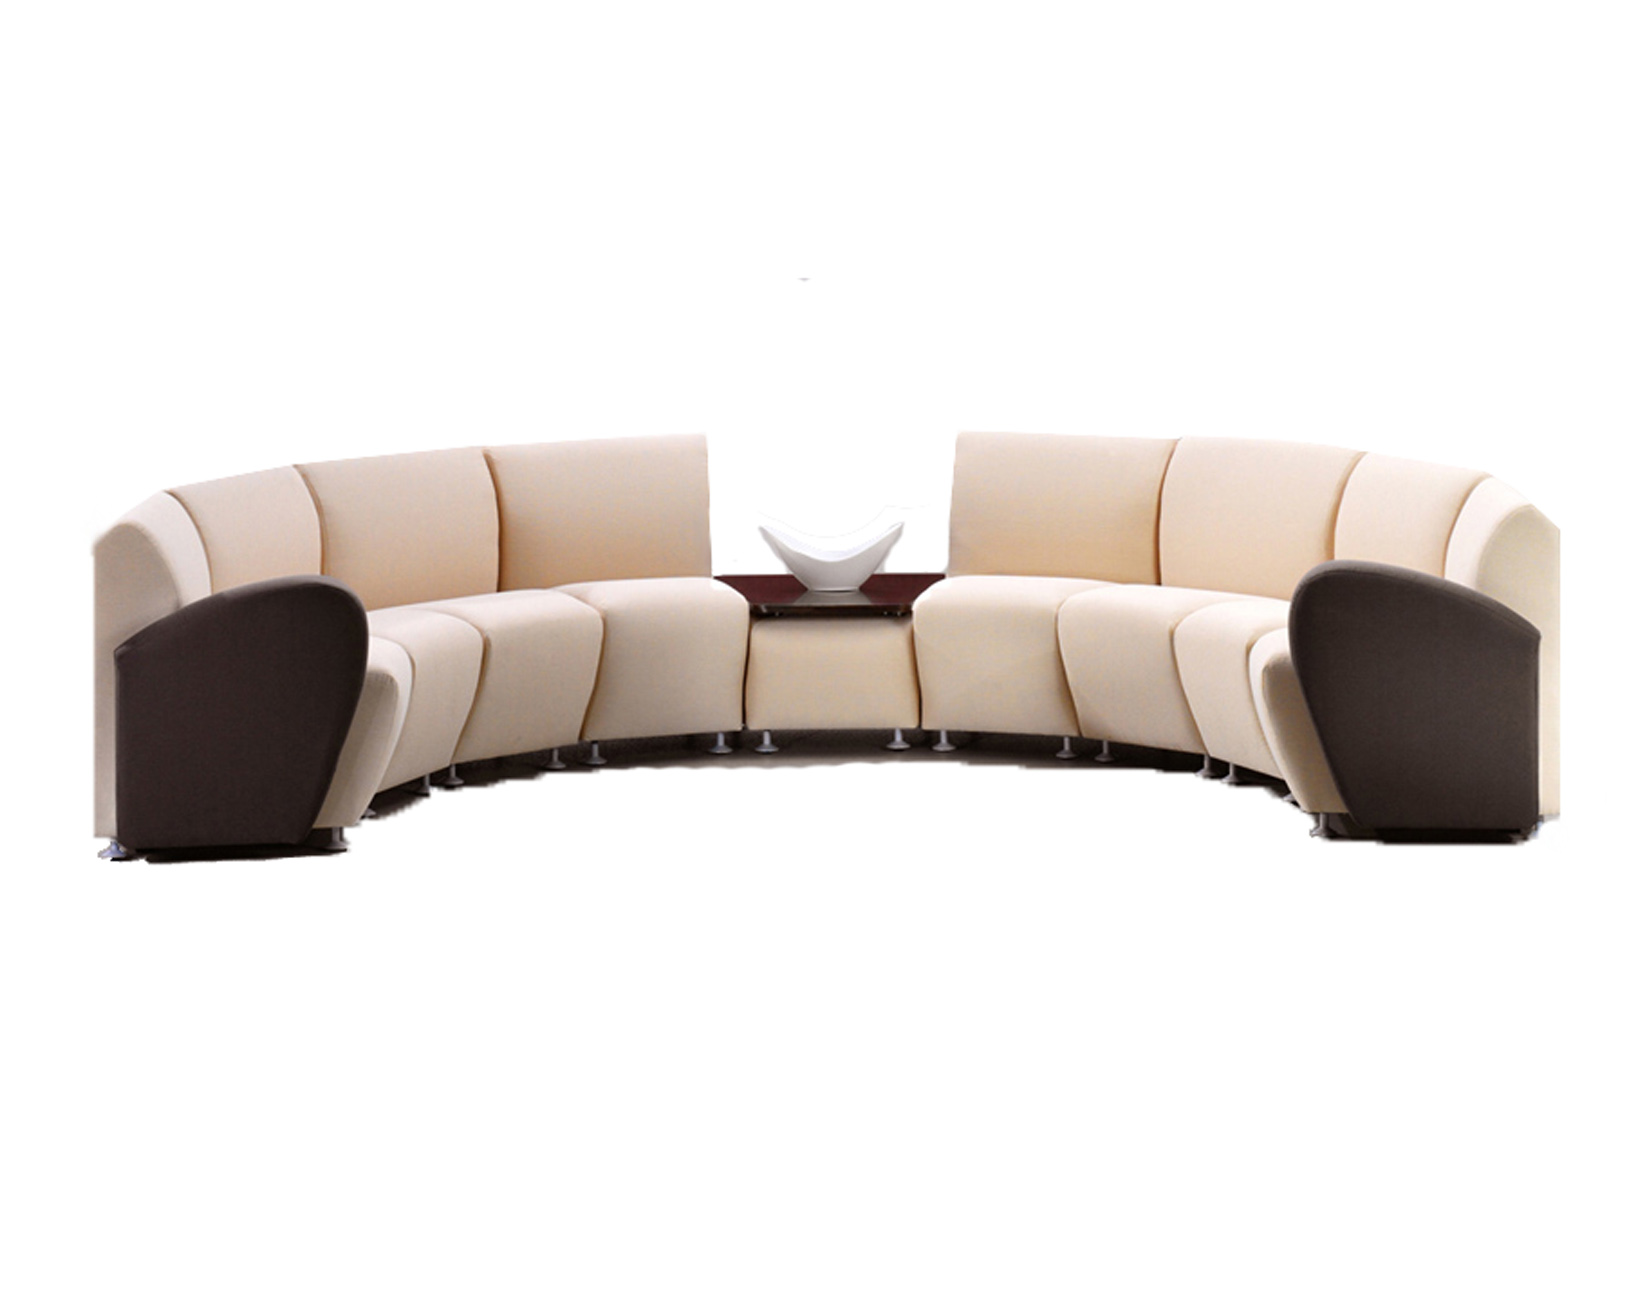 Jsi Encore Lounge Seating Tables Office Furniture